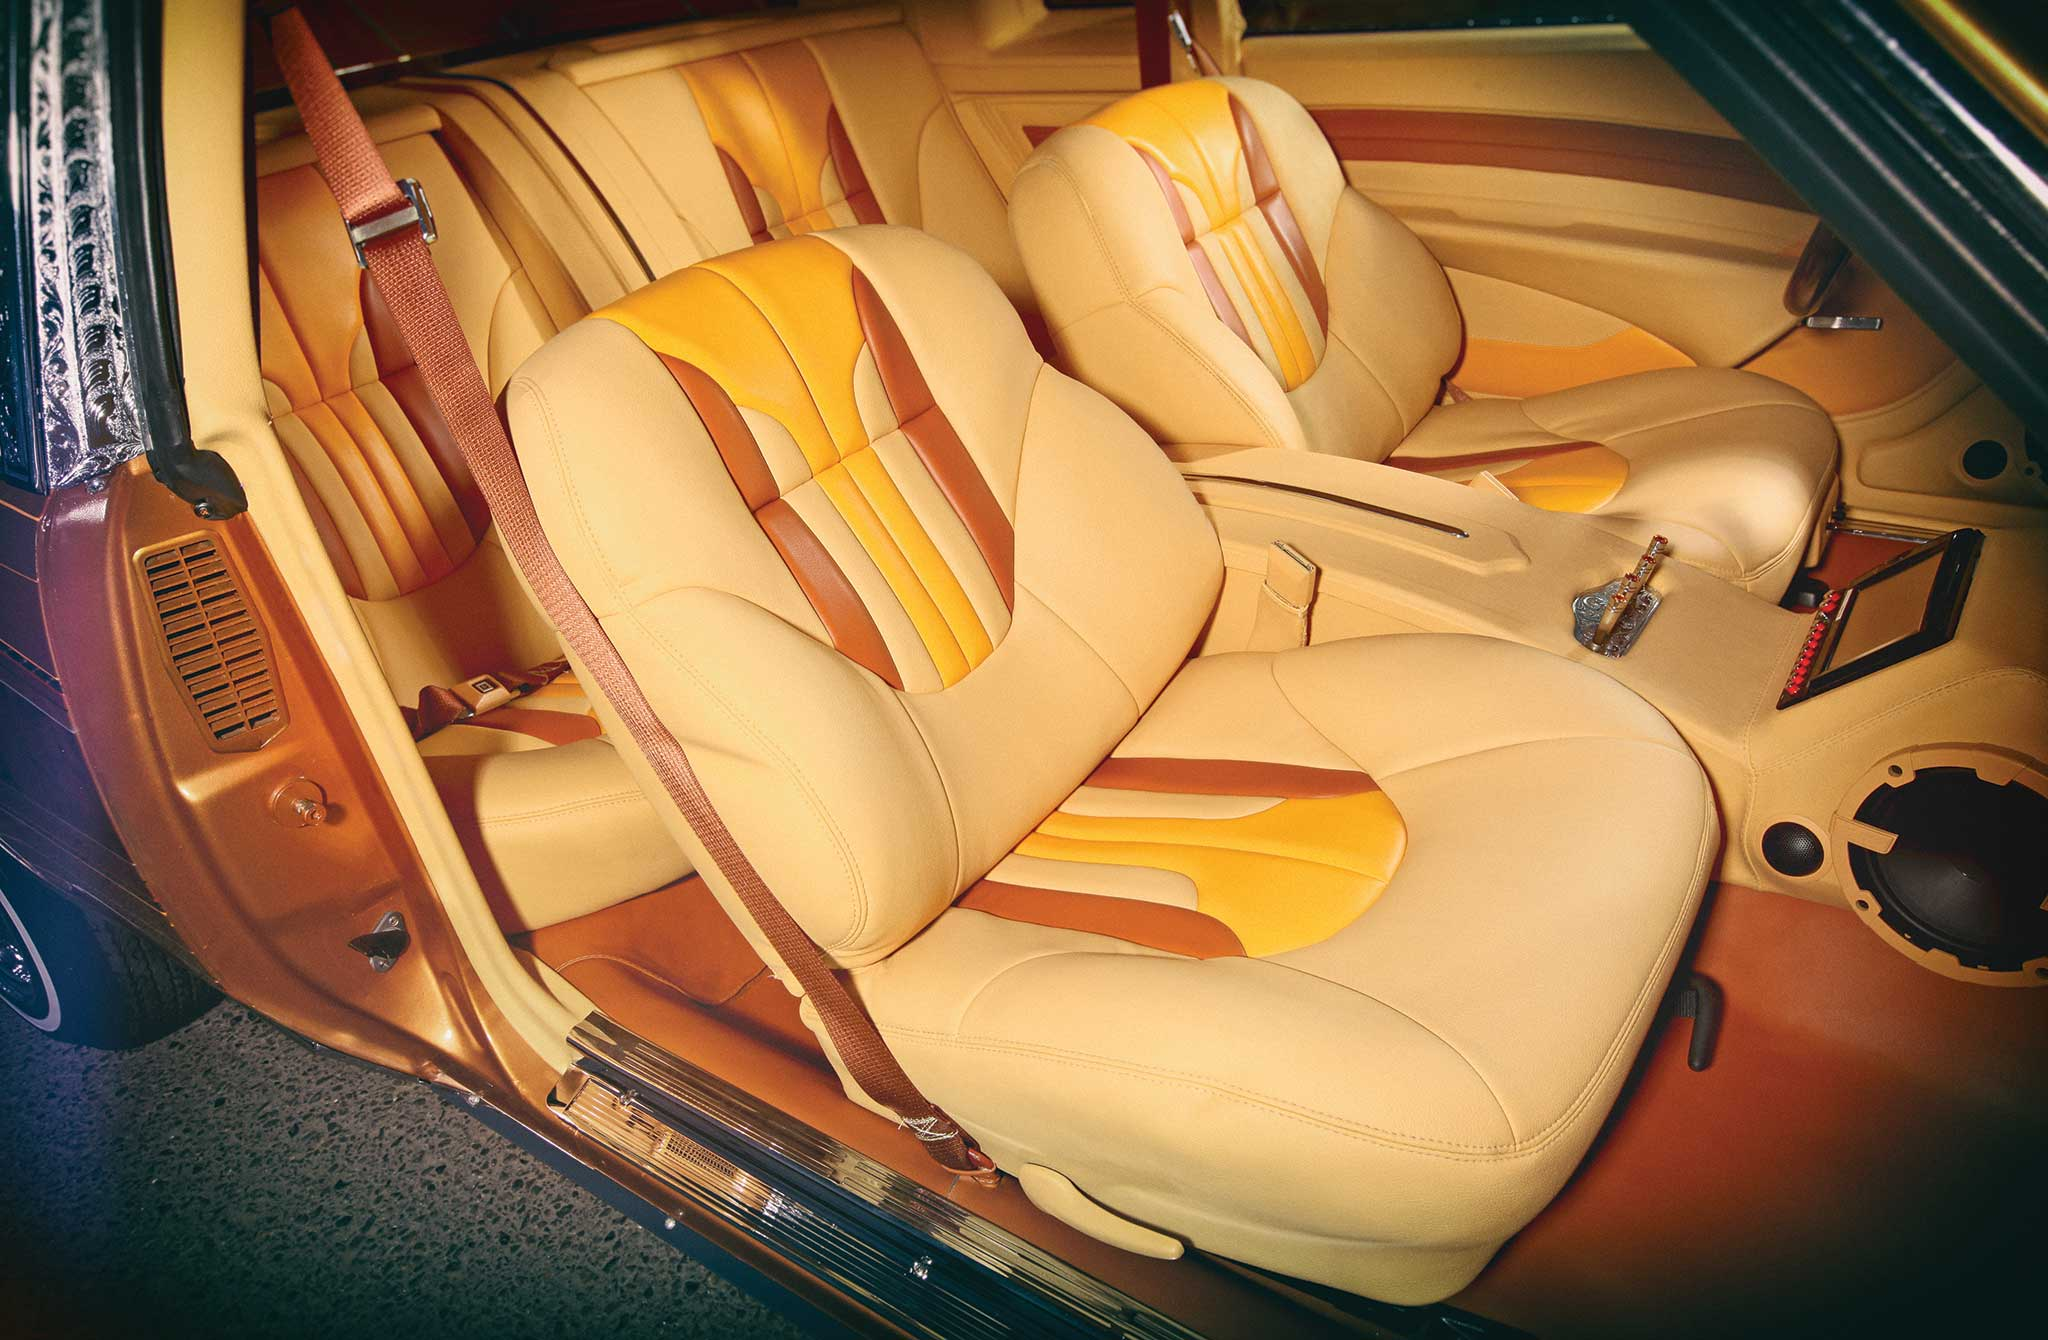 1986 buick regal ultraleather interior 004